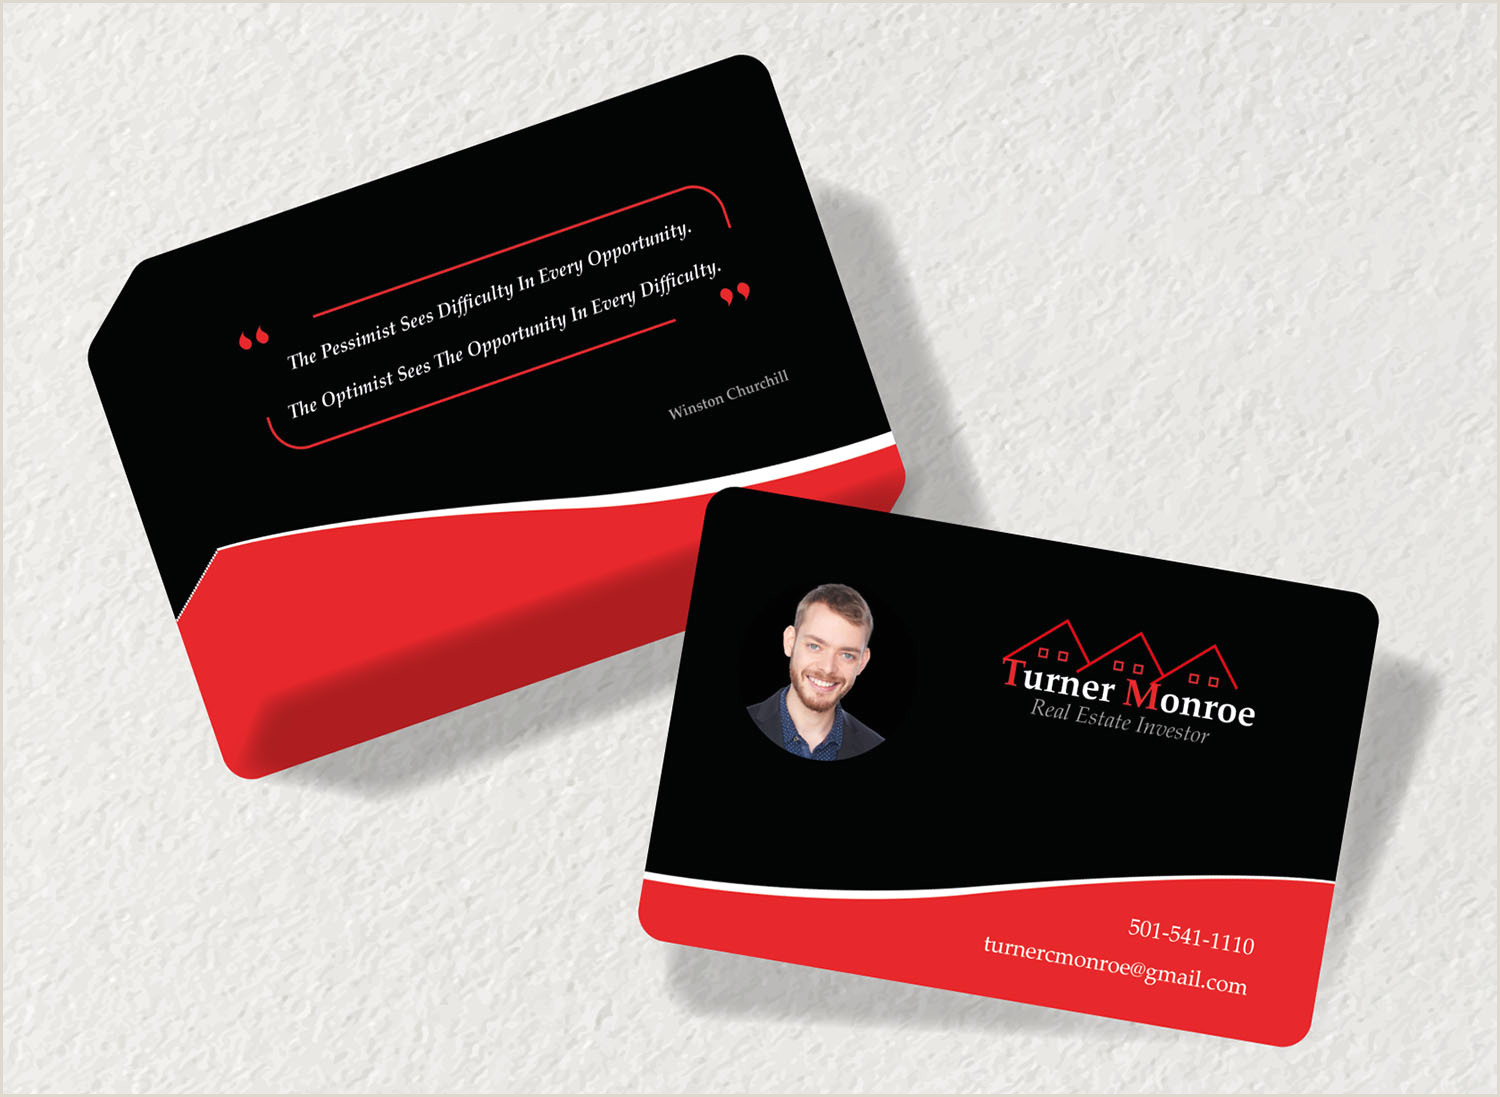 Cool Unique Business Cards For Realtores Modern Masculine Real Estate Business Card Design For